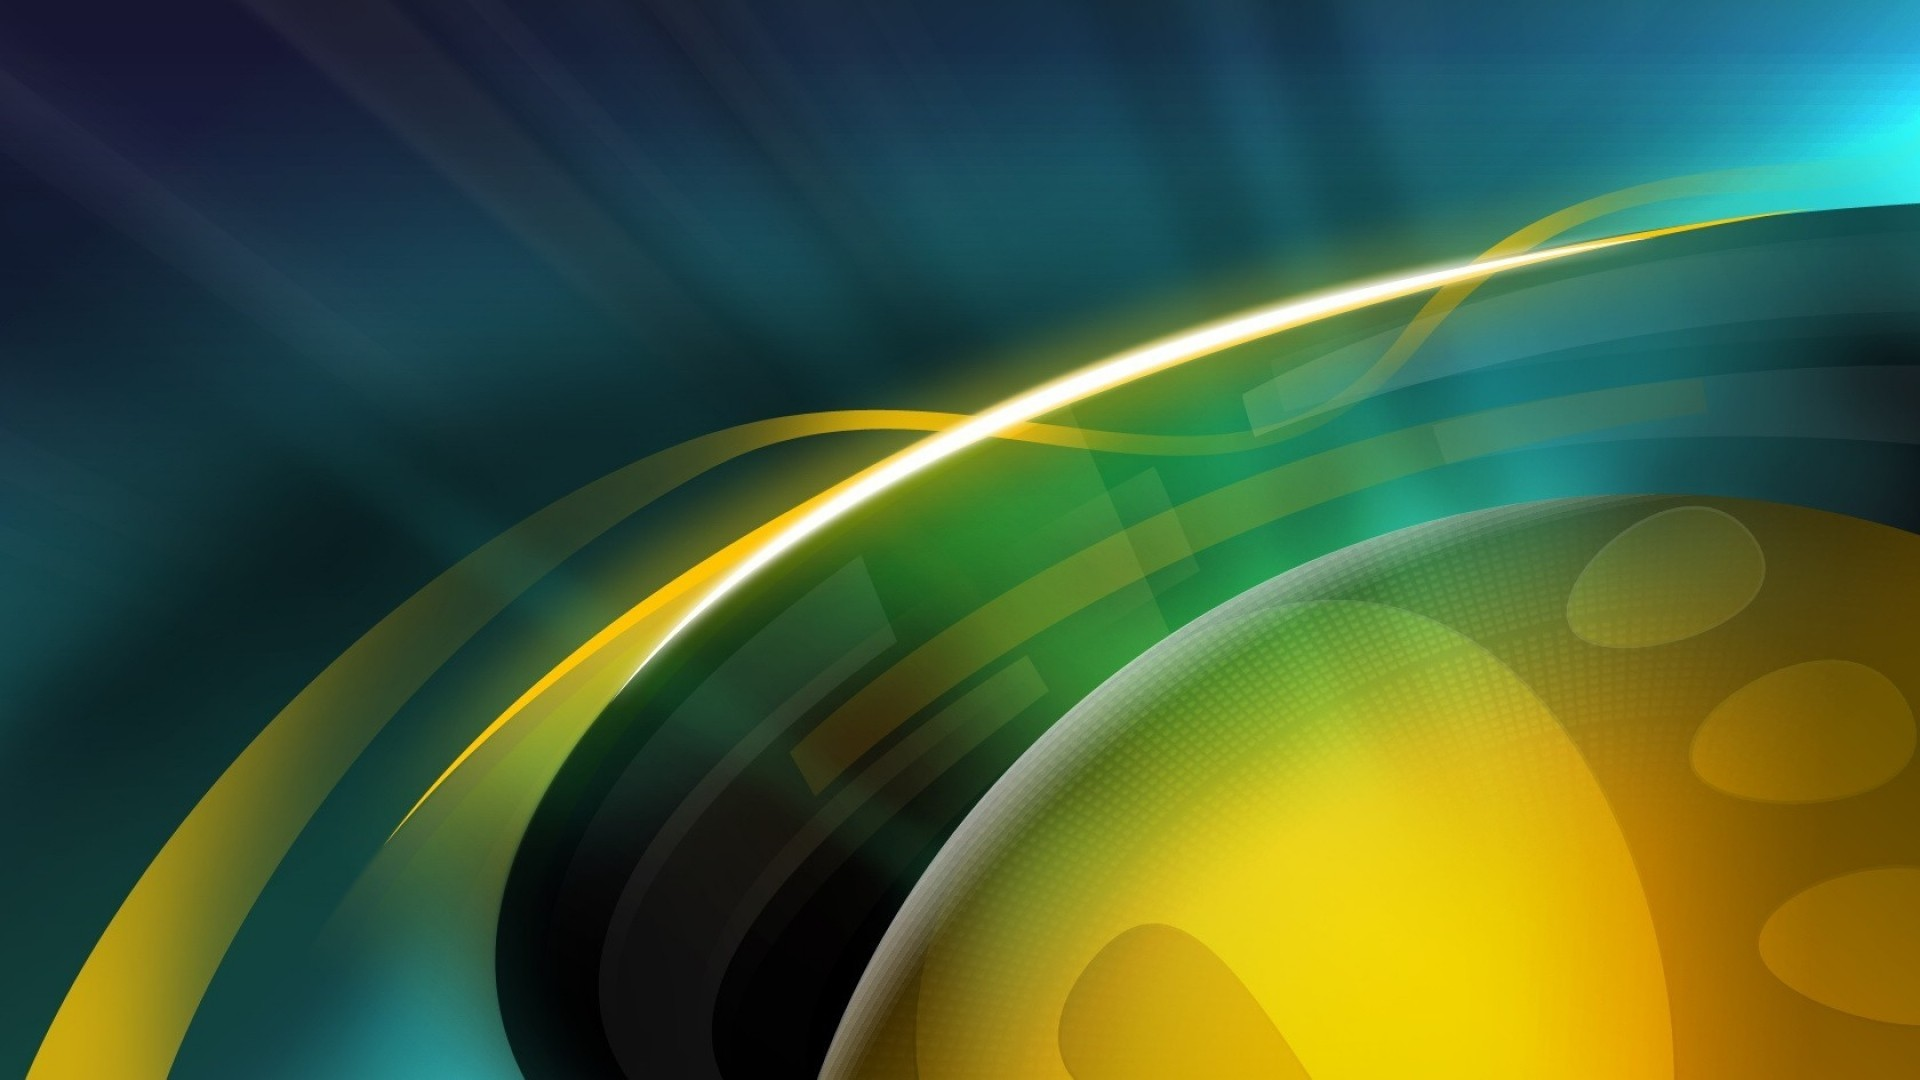 1920x1080  Wallpaper ball, circle, yellow, blue, green